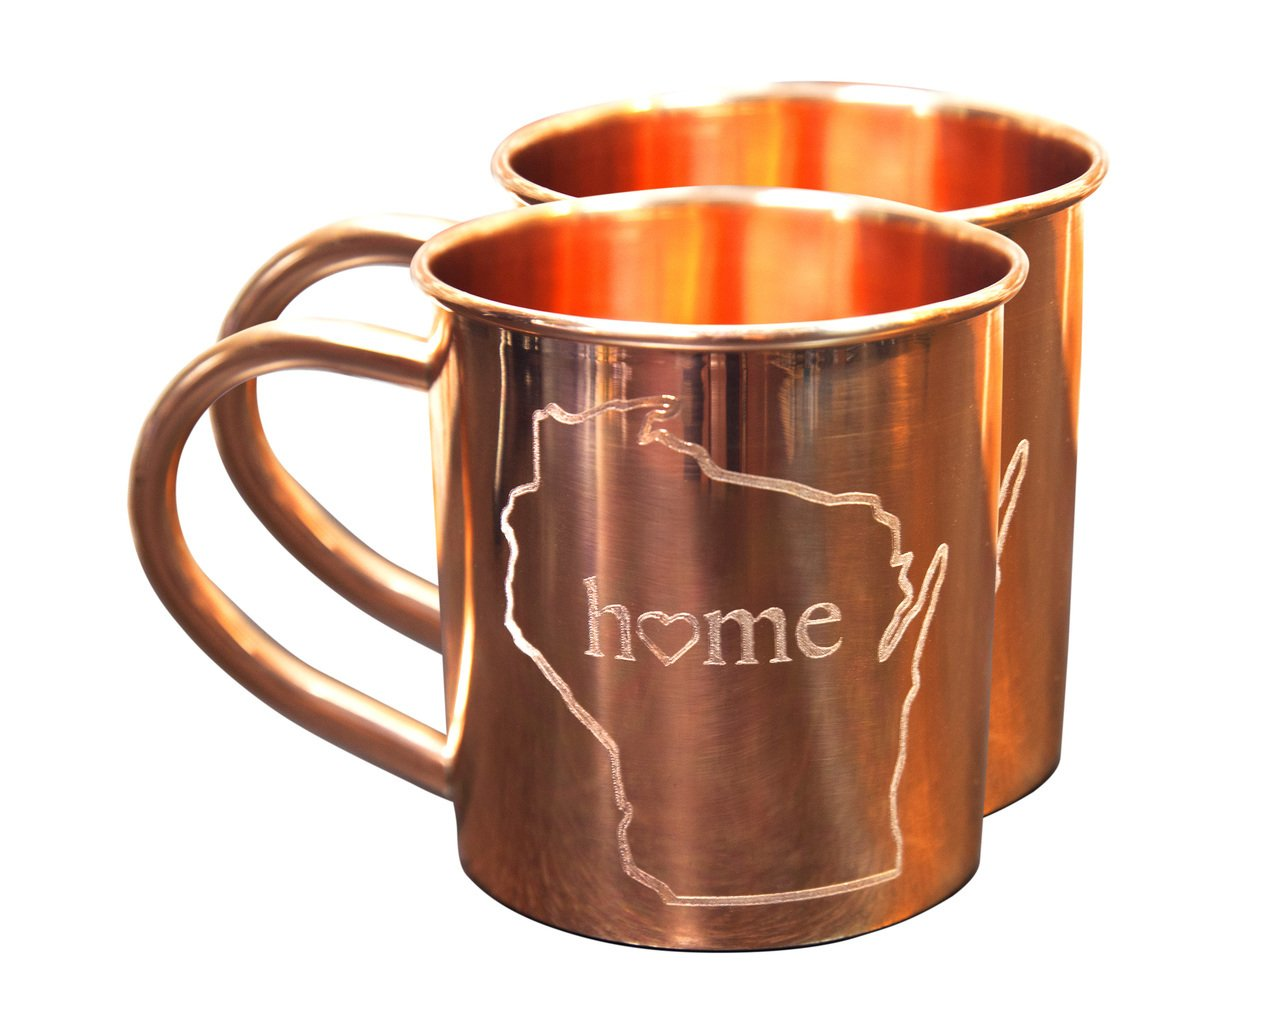 Home State Copper Mugs For Moscow Mules - Wisconsin Mug - 100% Pure Copper Mug - Best For Moscow Mules Lovers - Set of 2 Copper Cups - 14 OZ By Alchemade